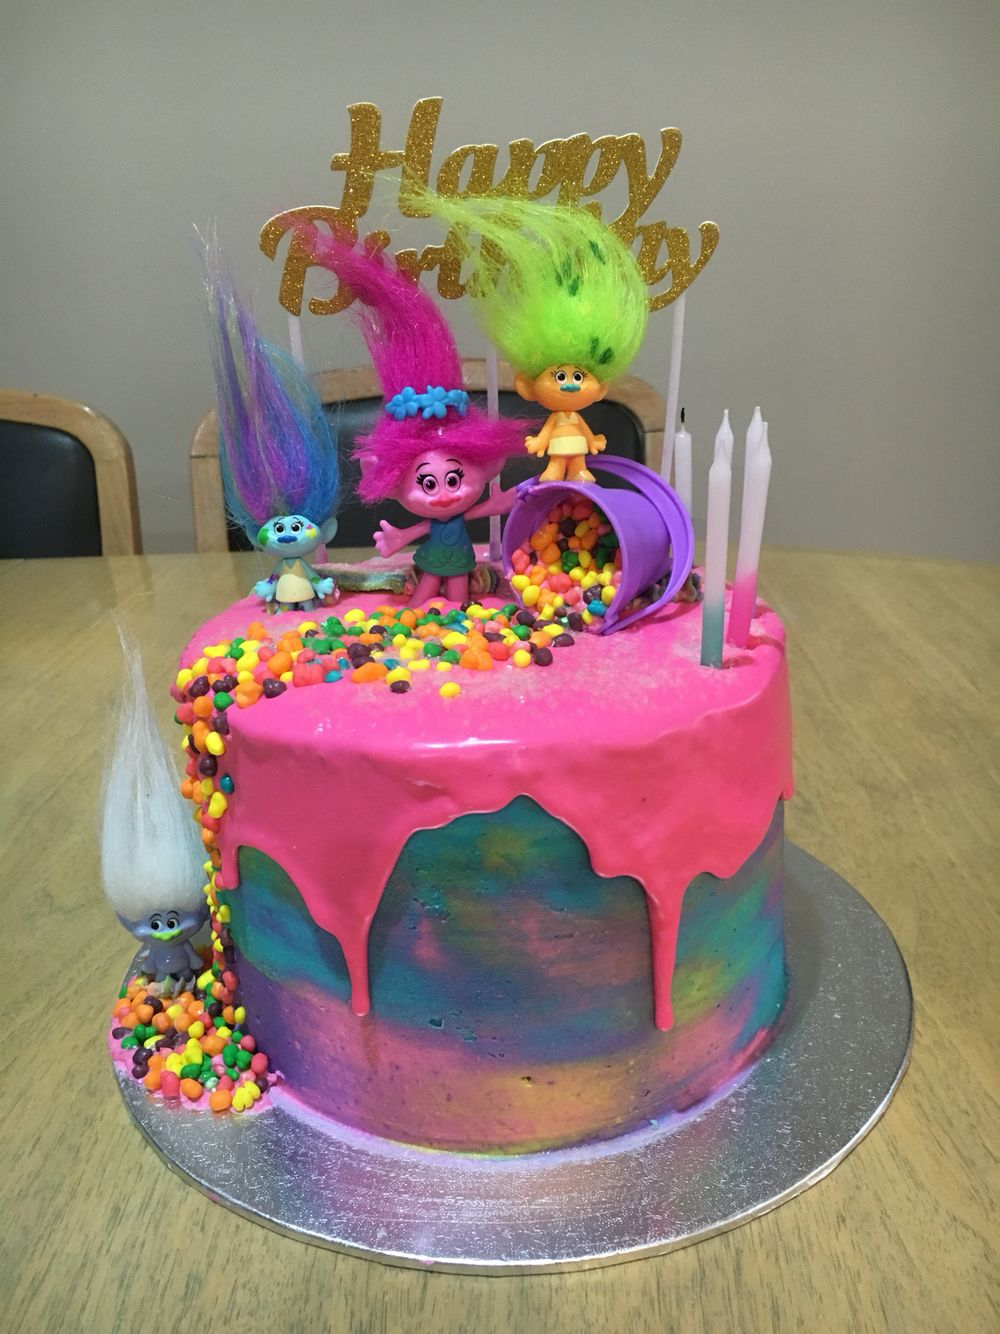 colorful birthday cakes for girls ; a1d72204a78d011f3bfe8b971d275e4c